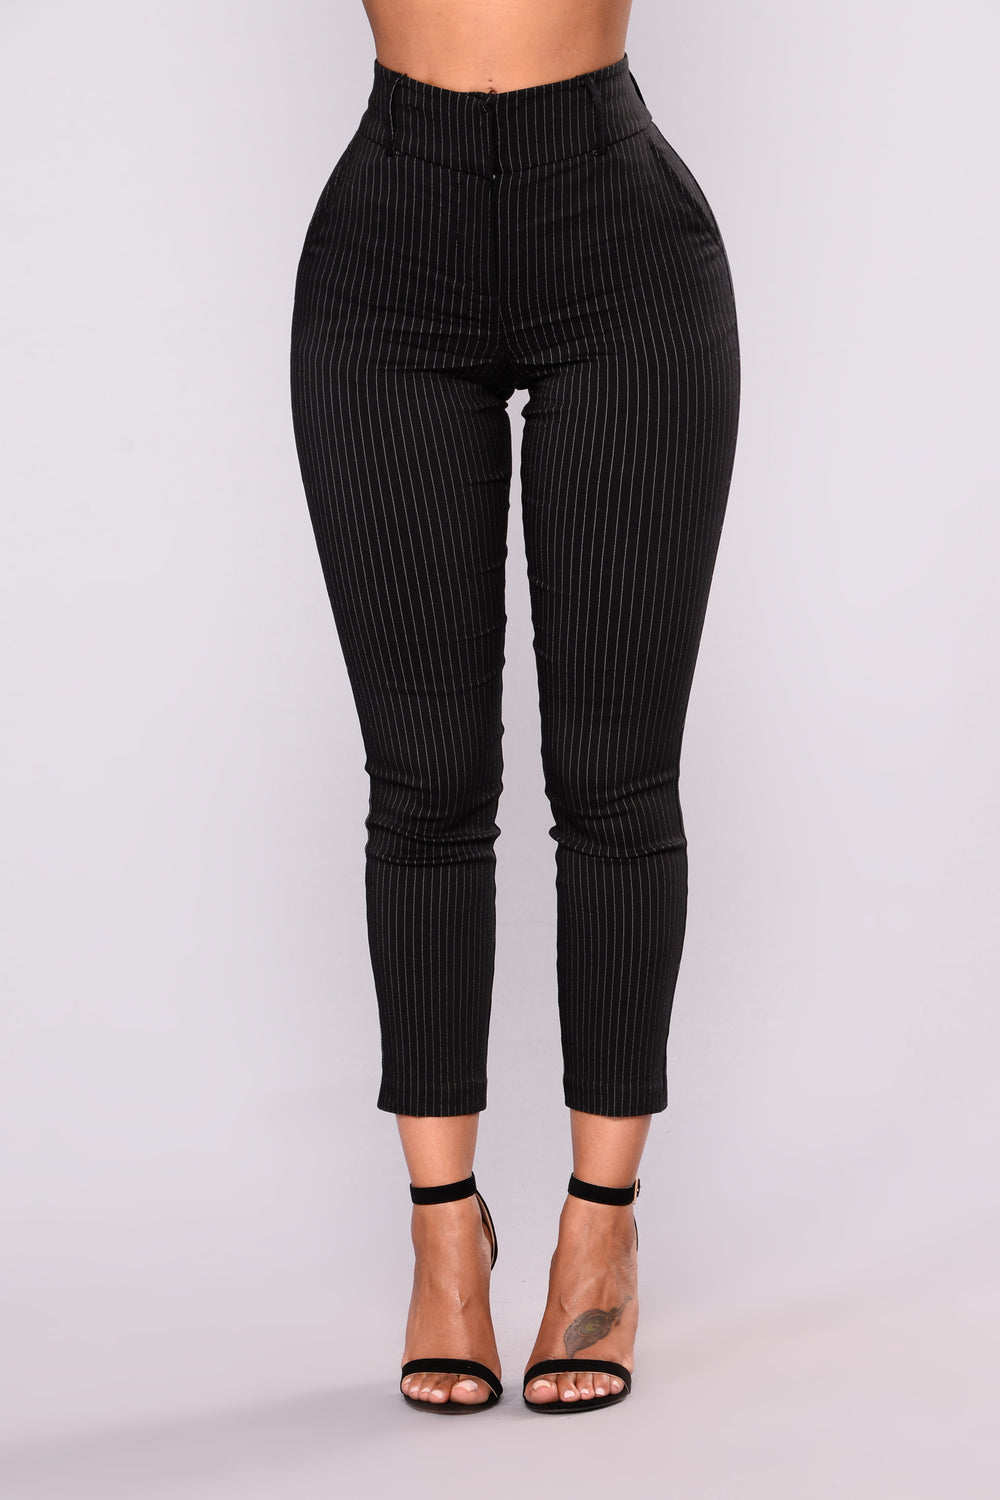 Anita Print Pants - Black